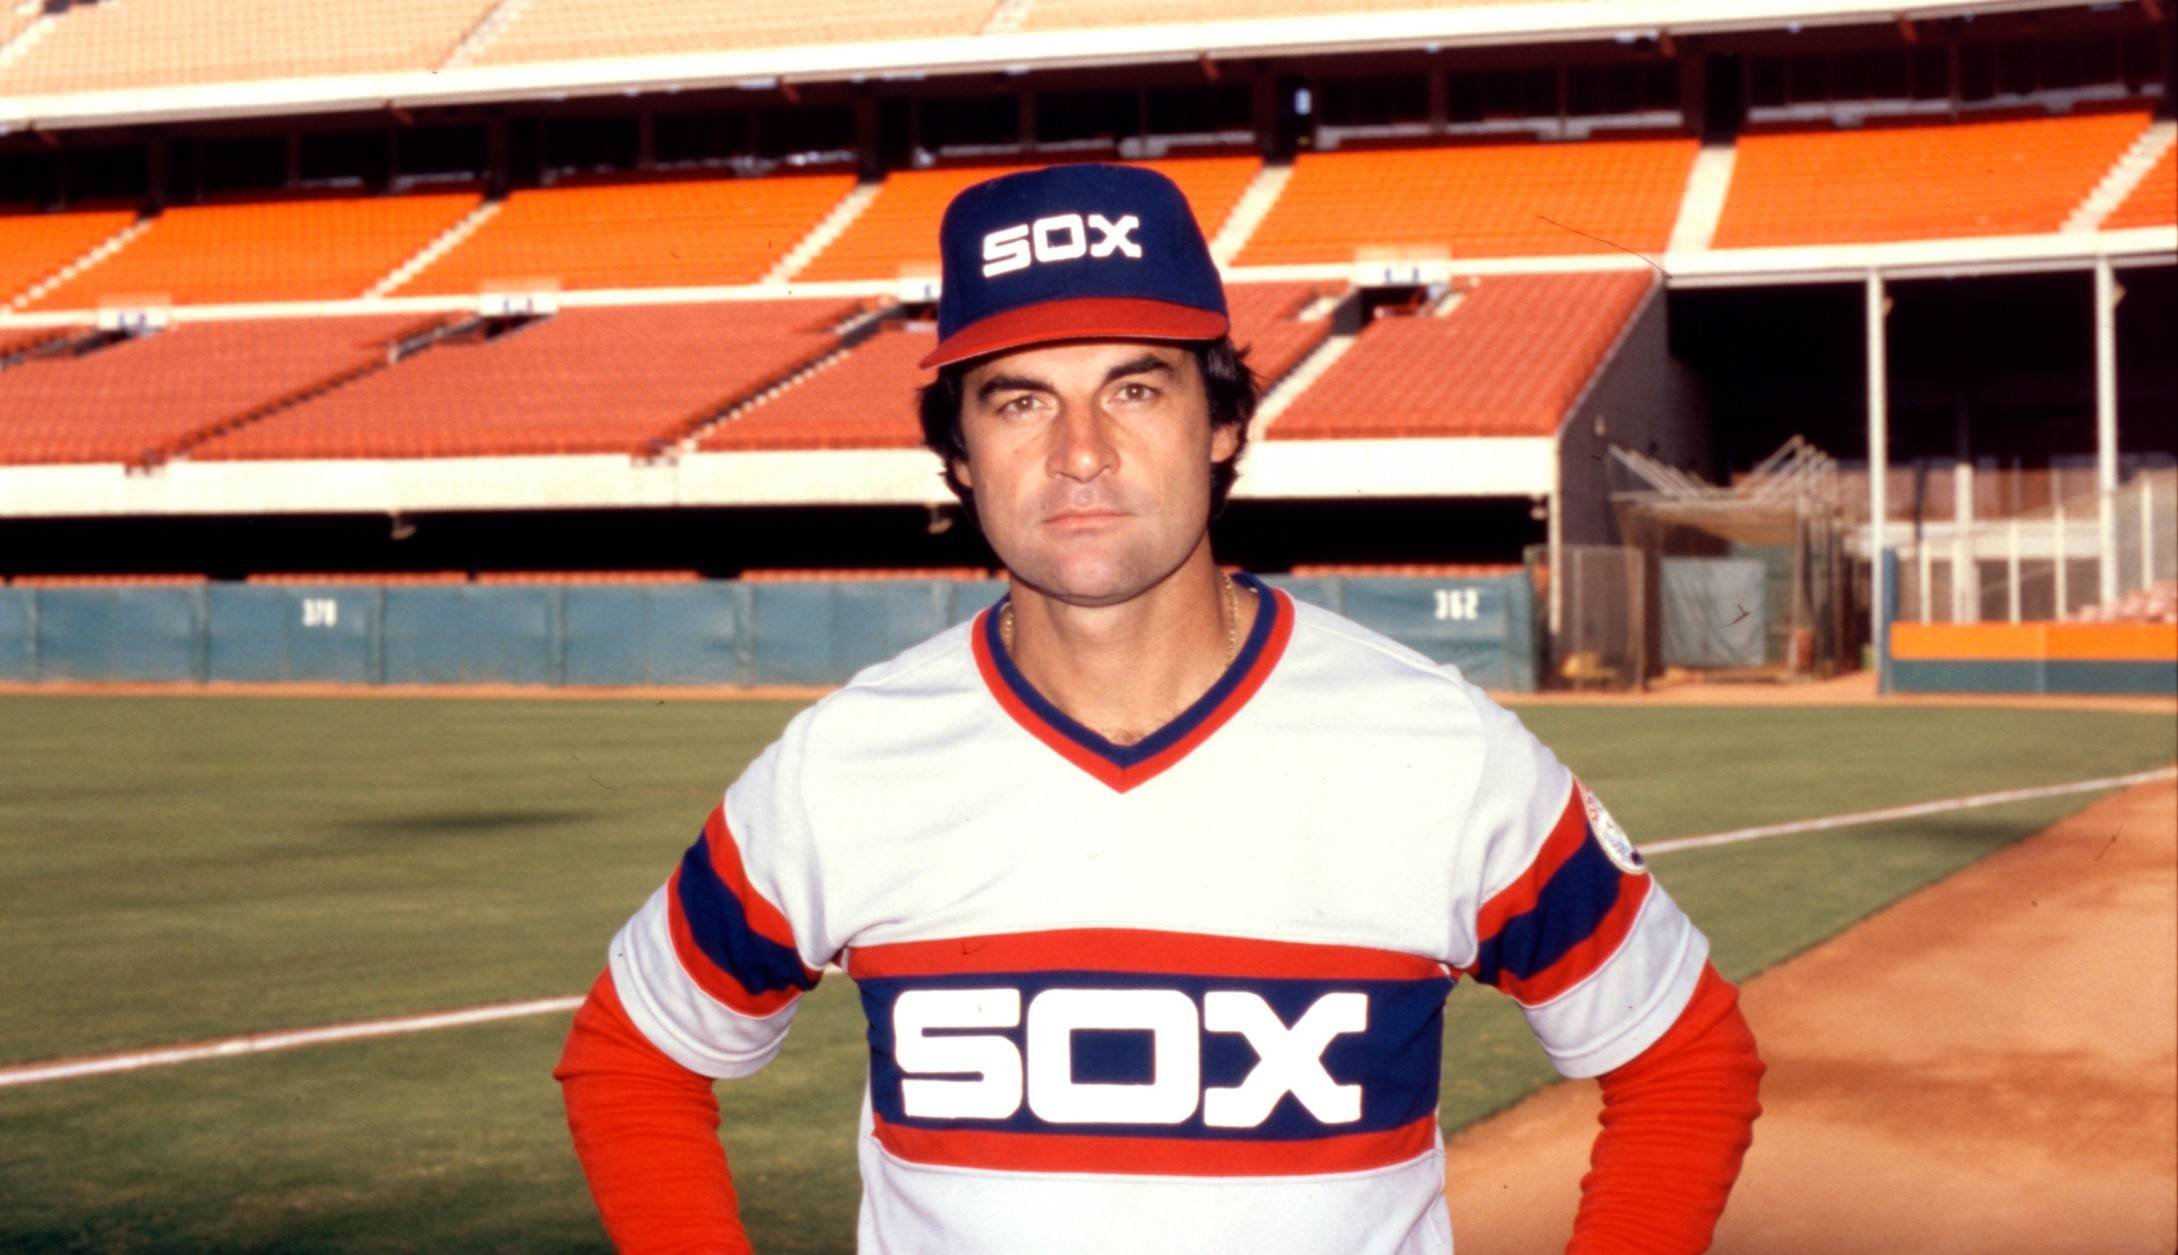 Then-White Sox manager Tony La Russa in 1983. La Russa's years with the White Sox add a strong Chicago presence alongside ex-Cub Greg Maddux and Sox legend Frank Thomas to today's Hall of Fame induction ceremony.